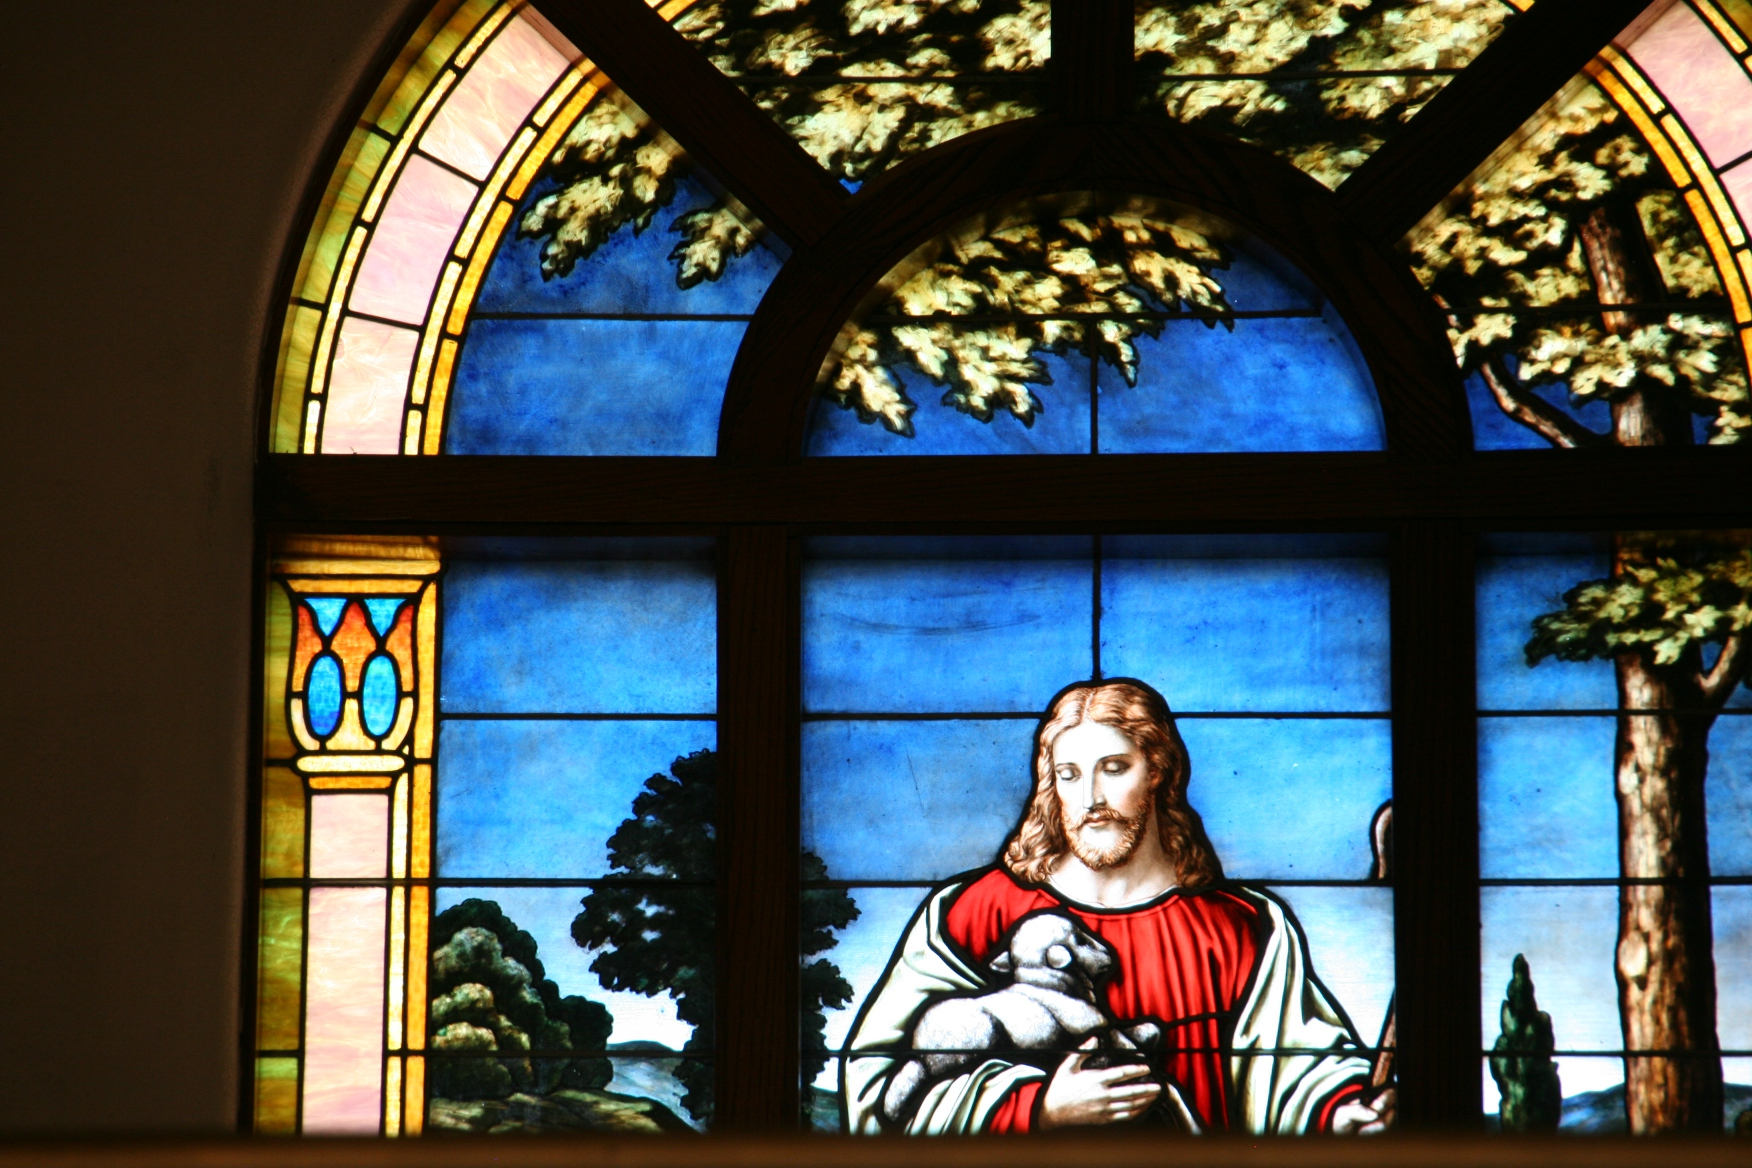 From North Morristown Church Basement Food Fellowship Dinner 129 Jesus Holding Lamb Stained Glass